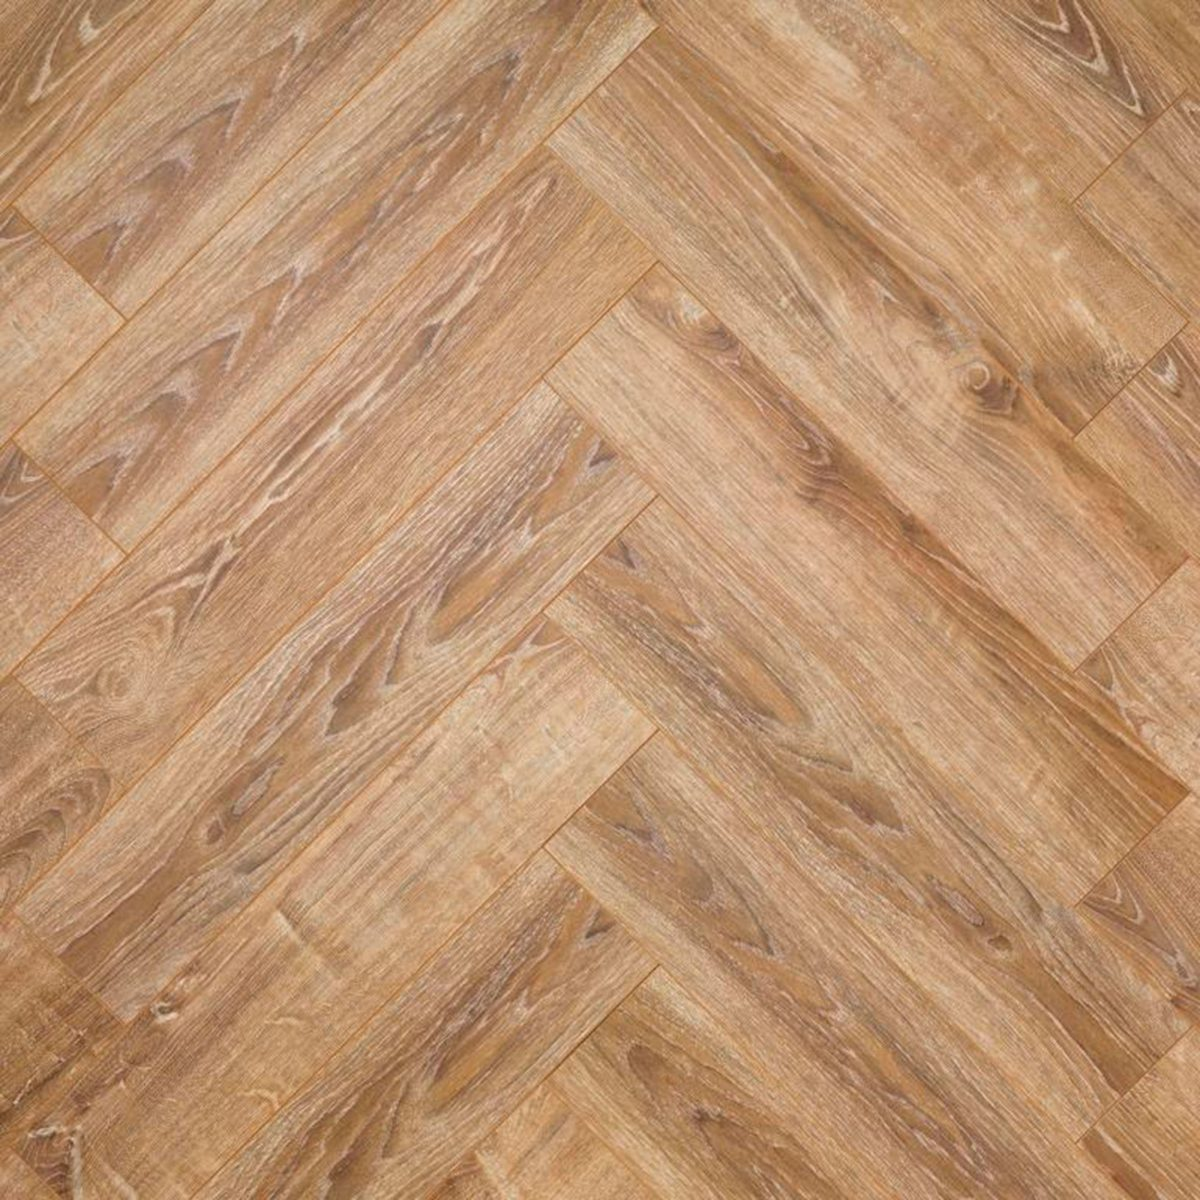 Nature AC6 Herringbone 12mm Rustic Oak Laminate Flooring